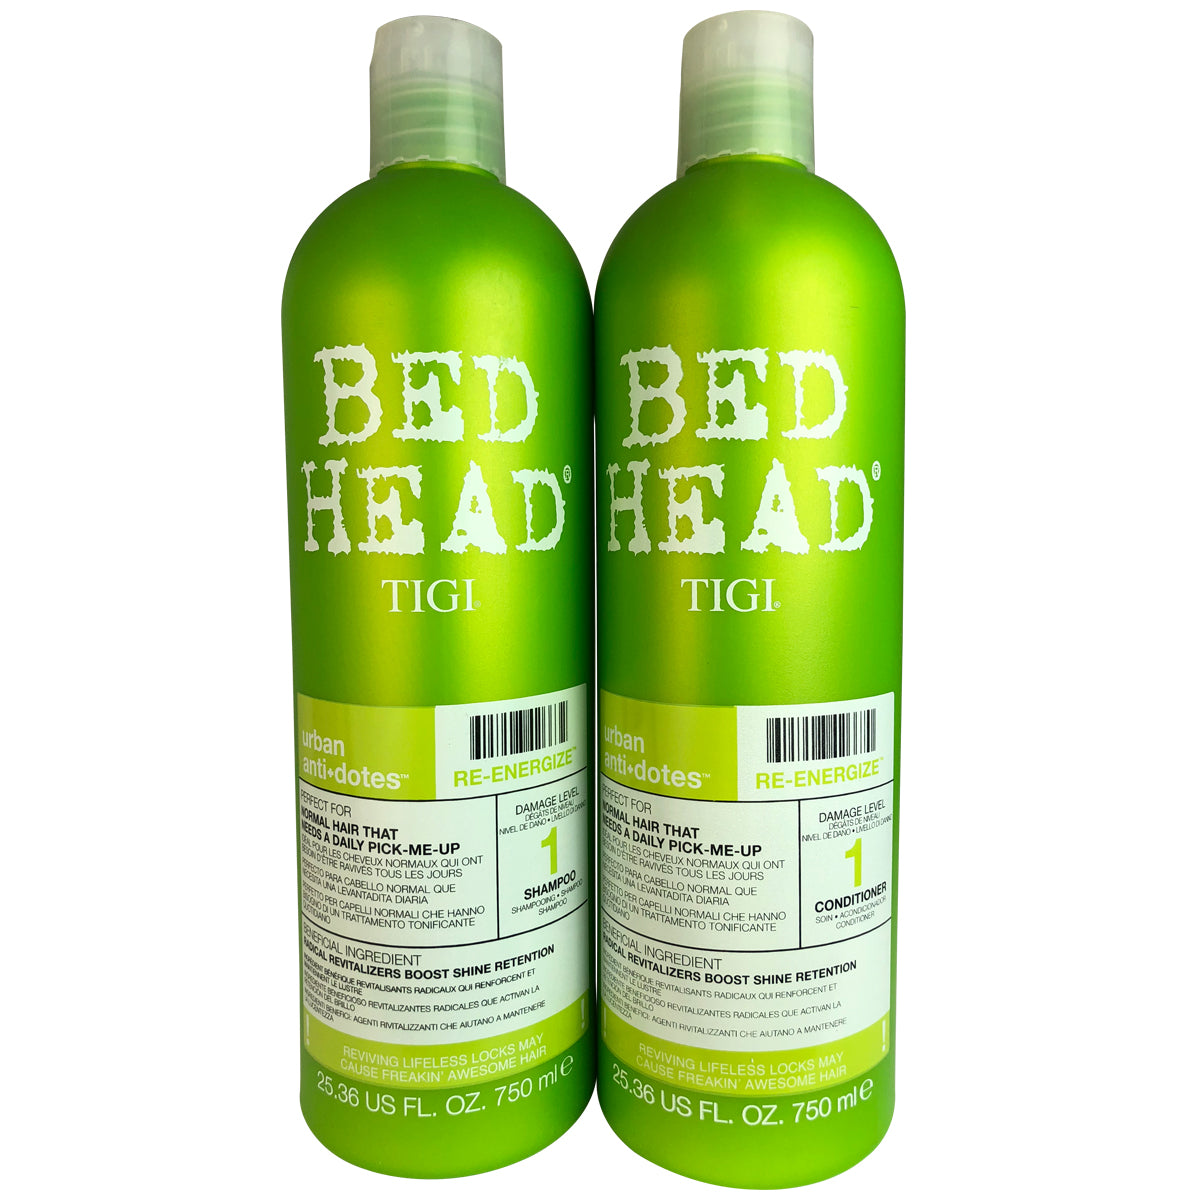 Tigi Bed Head Urban Antidotes Re-Energizing Hair Shampoo & Conditioner 25 oz ea